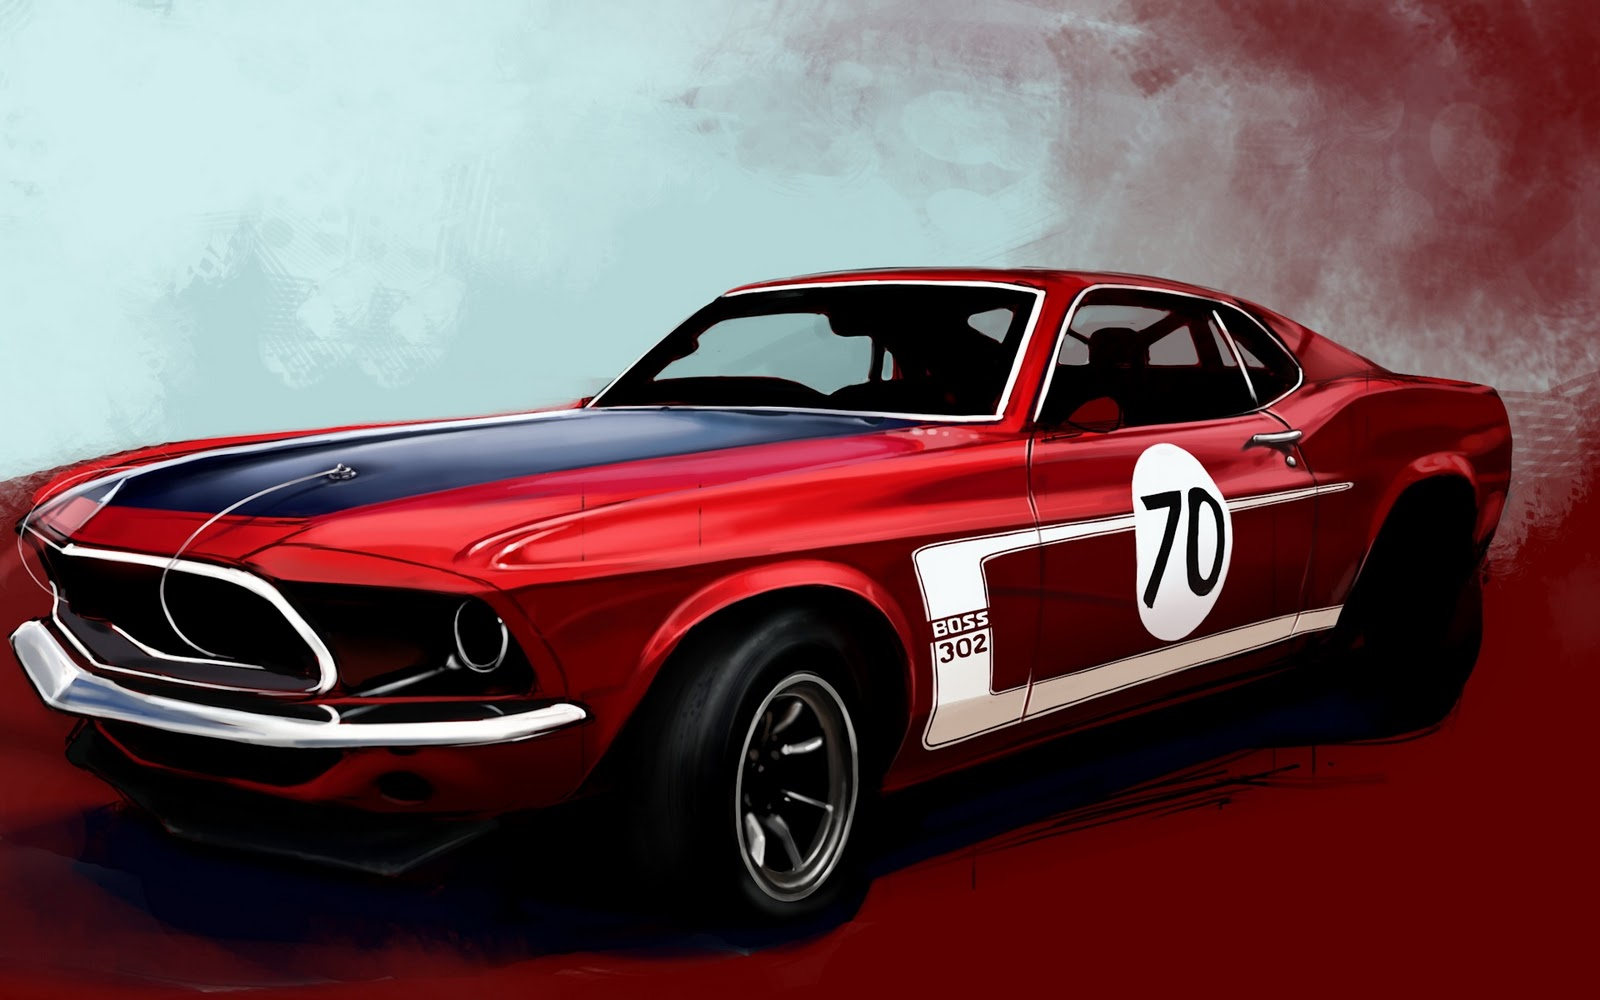 Cool Cars Wallpaper cool muscle car wallpaper 1600x1000